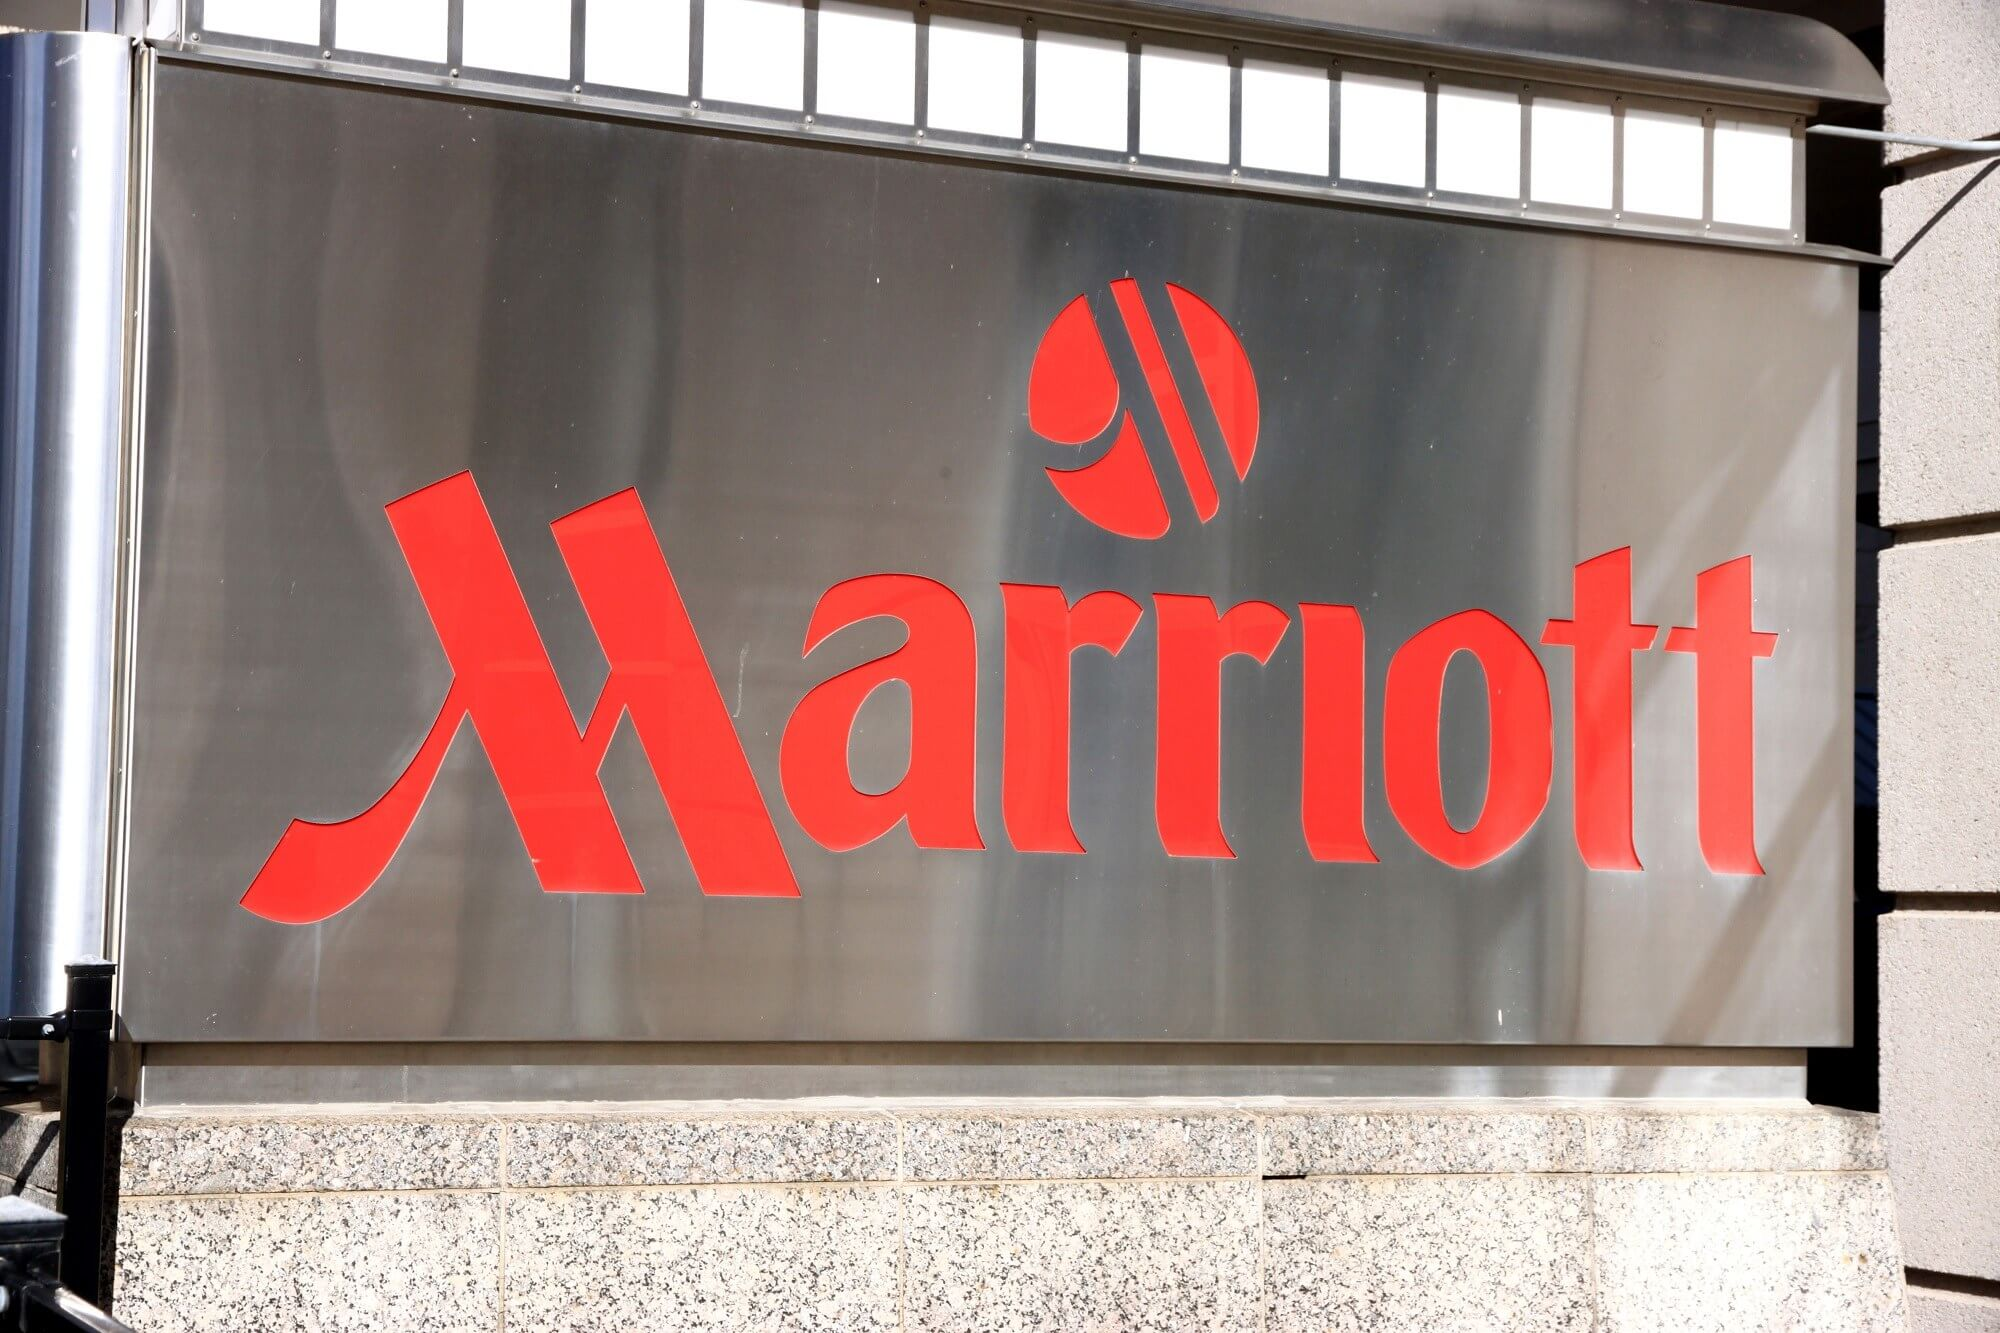 Marriott: Info of Up to 500 Million Guests Compromised After Security Breach